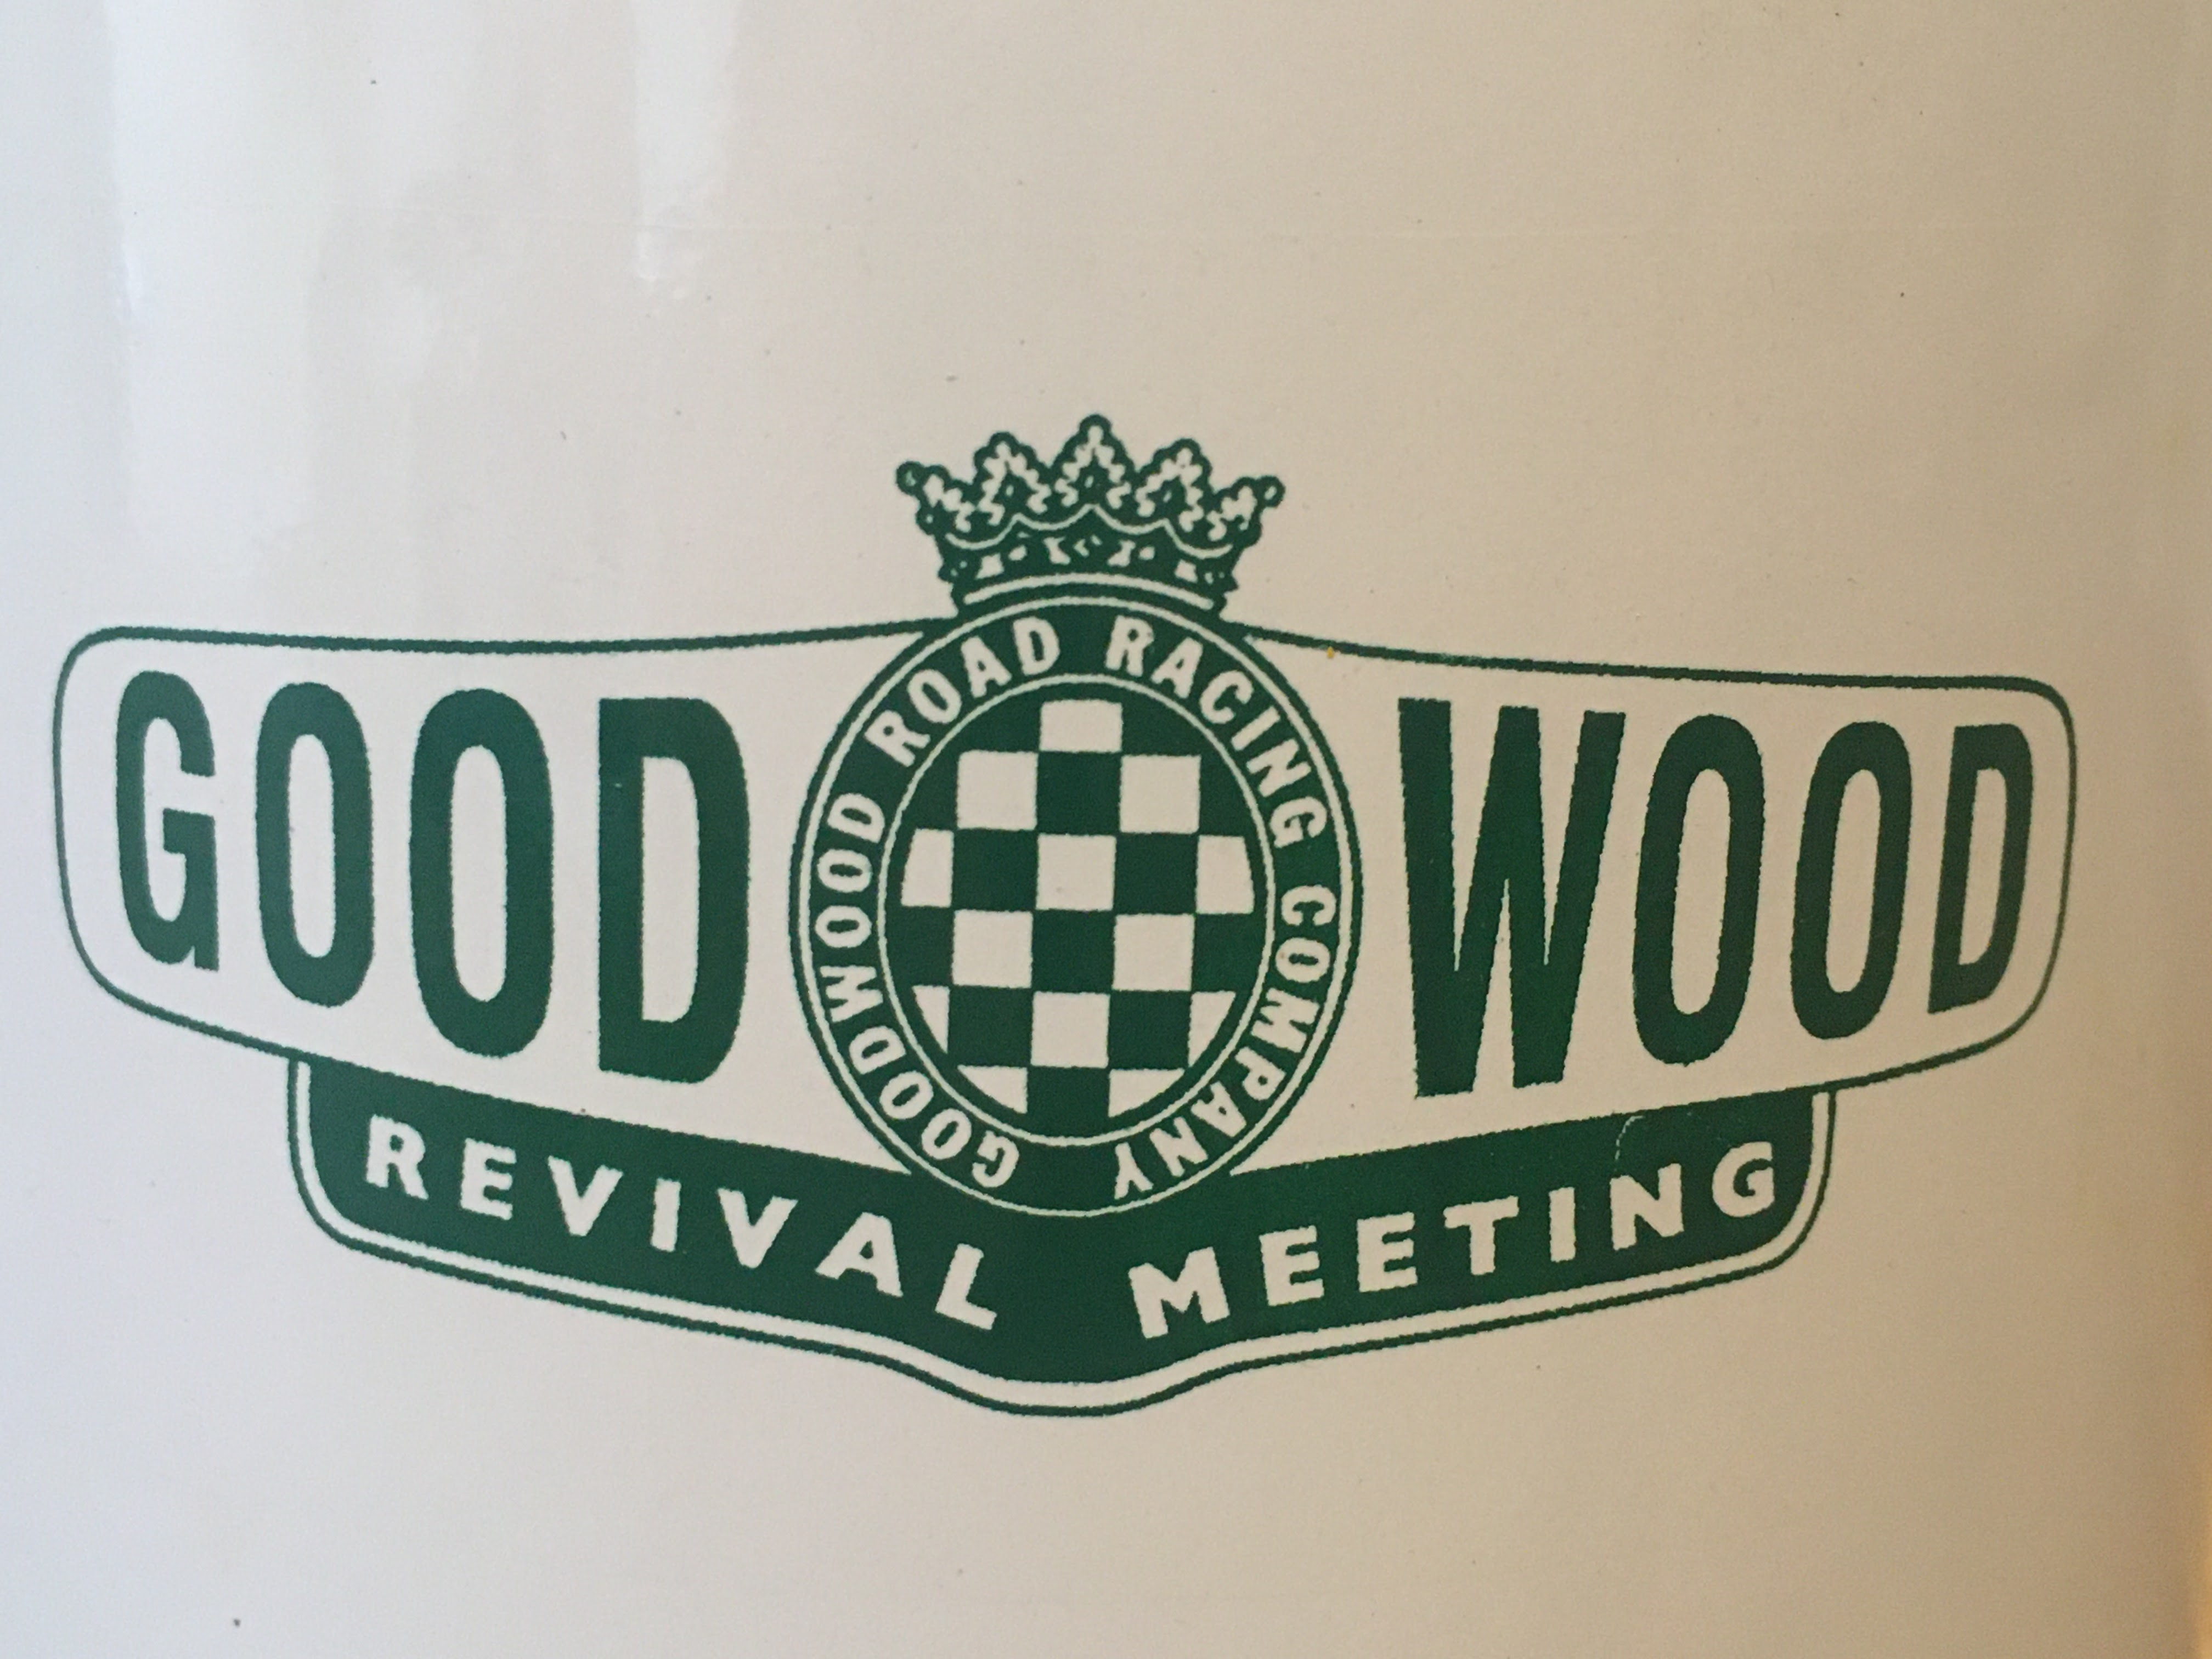 Official Goodwood Revival Meeting Mug - Image 2 of 5